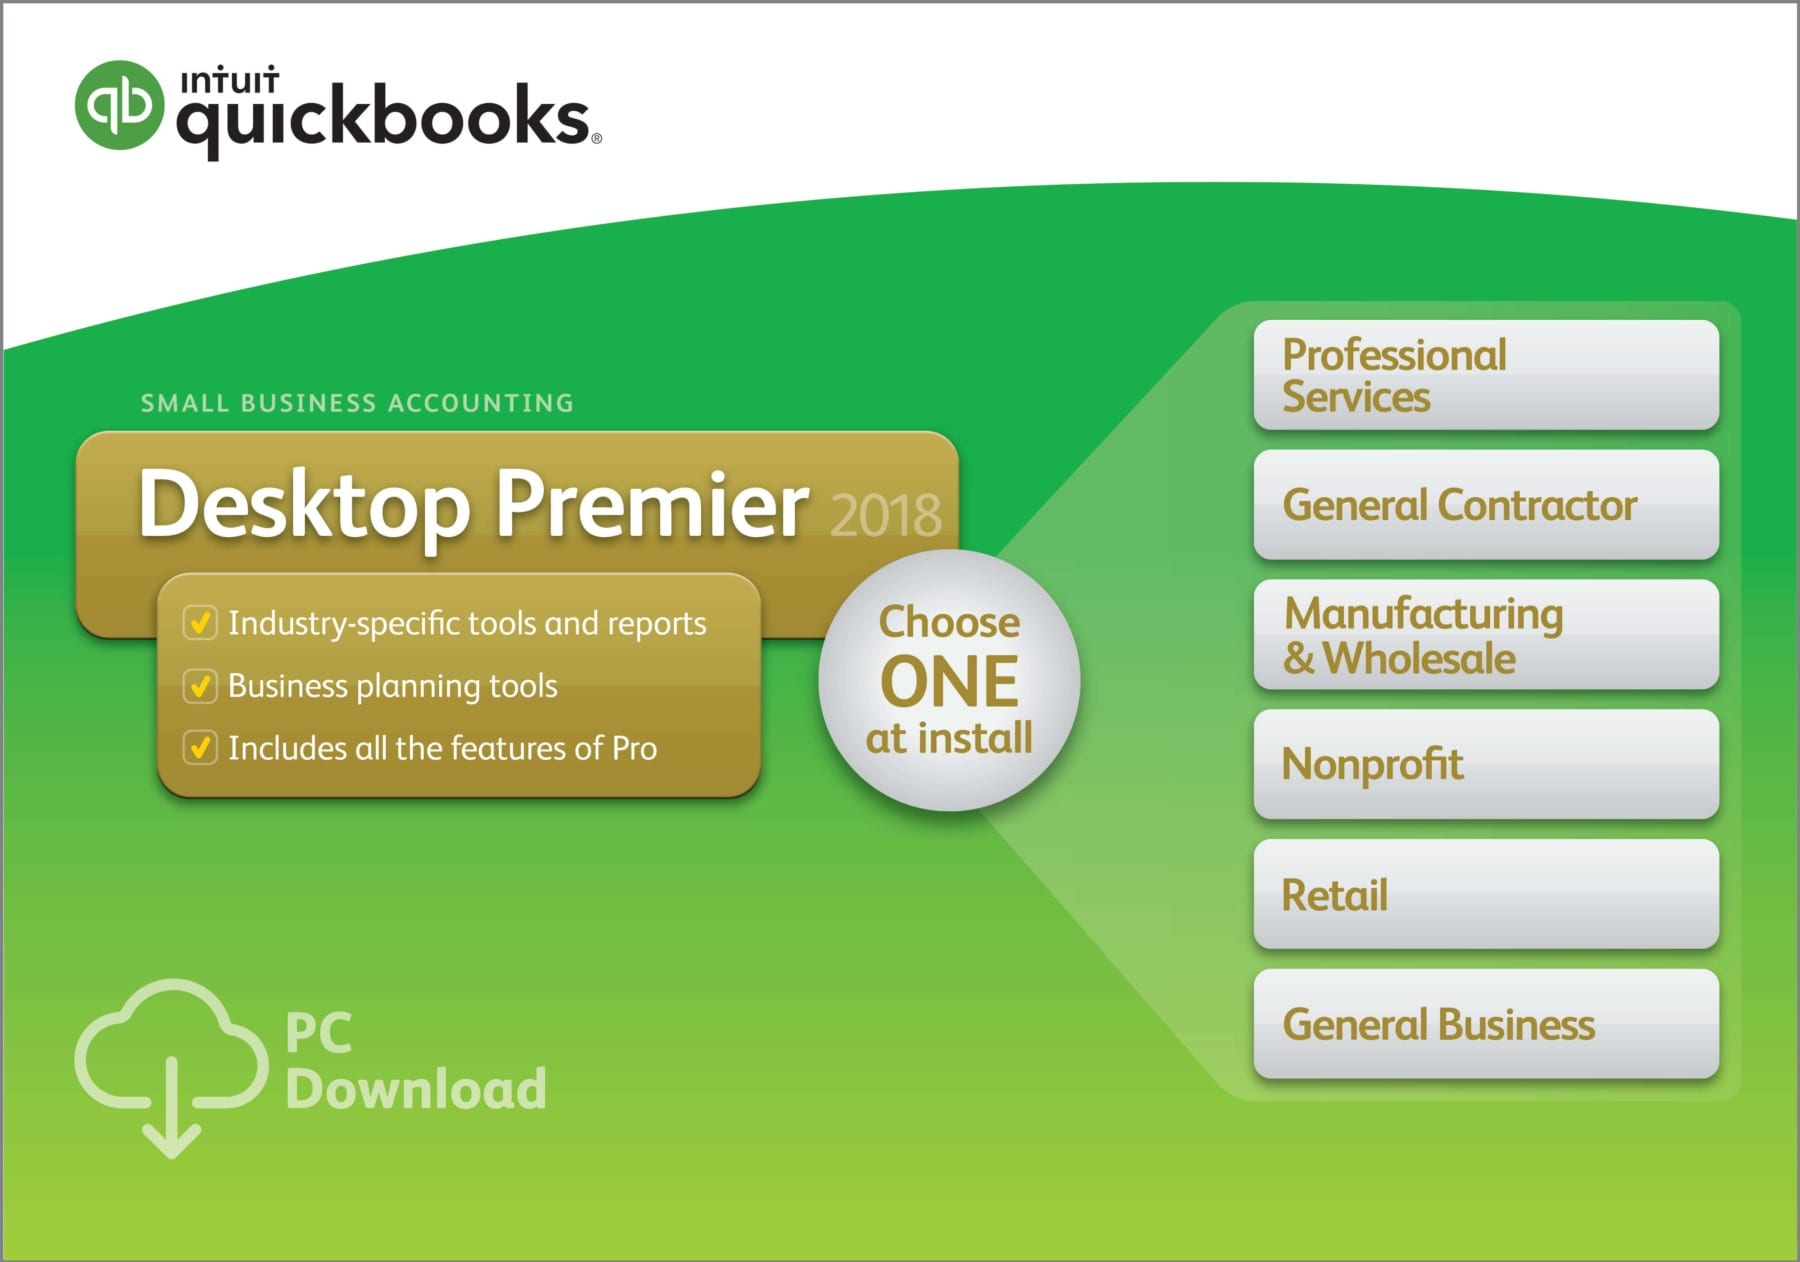 QuickBooks Desktop Premier 2018 Accounting Software